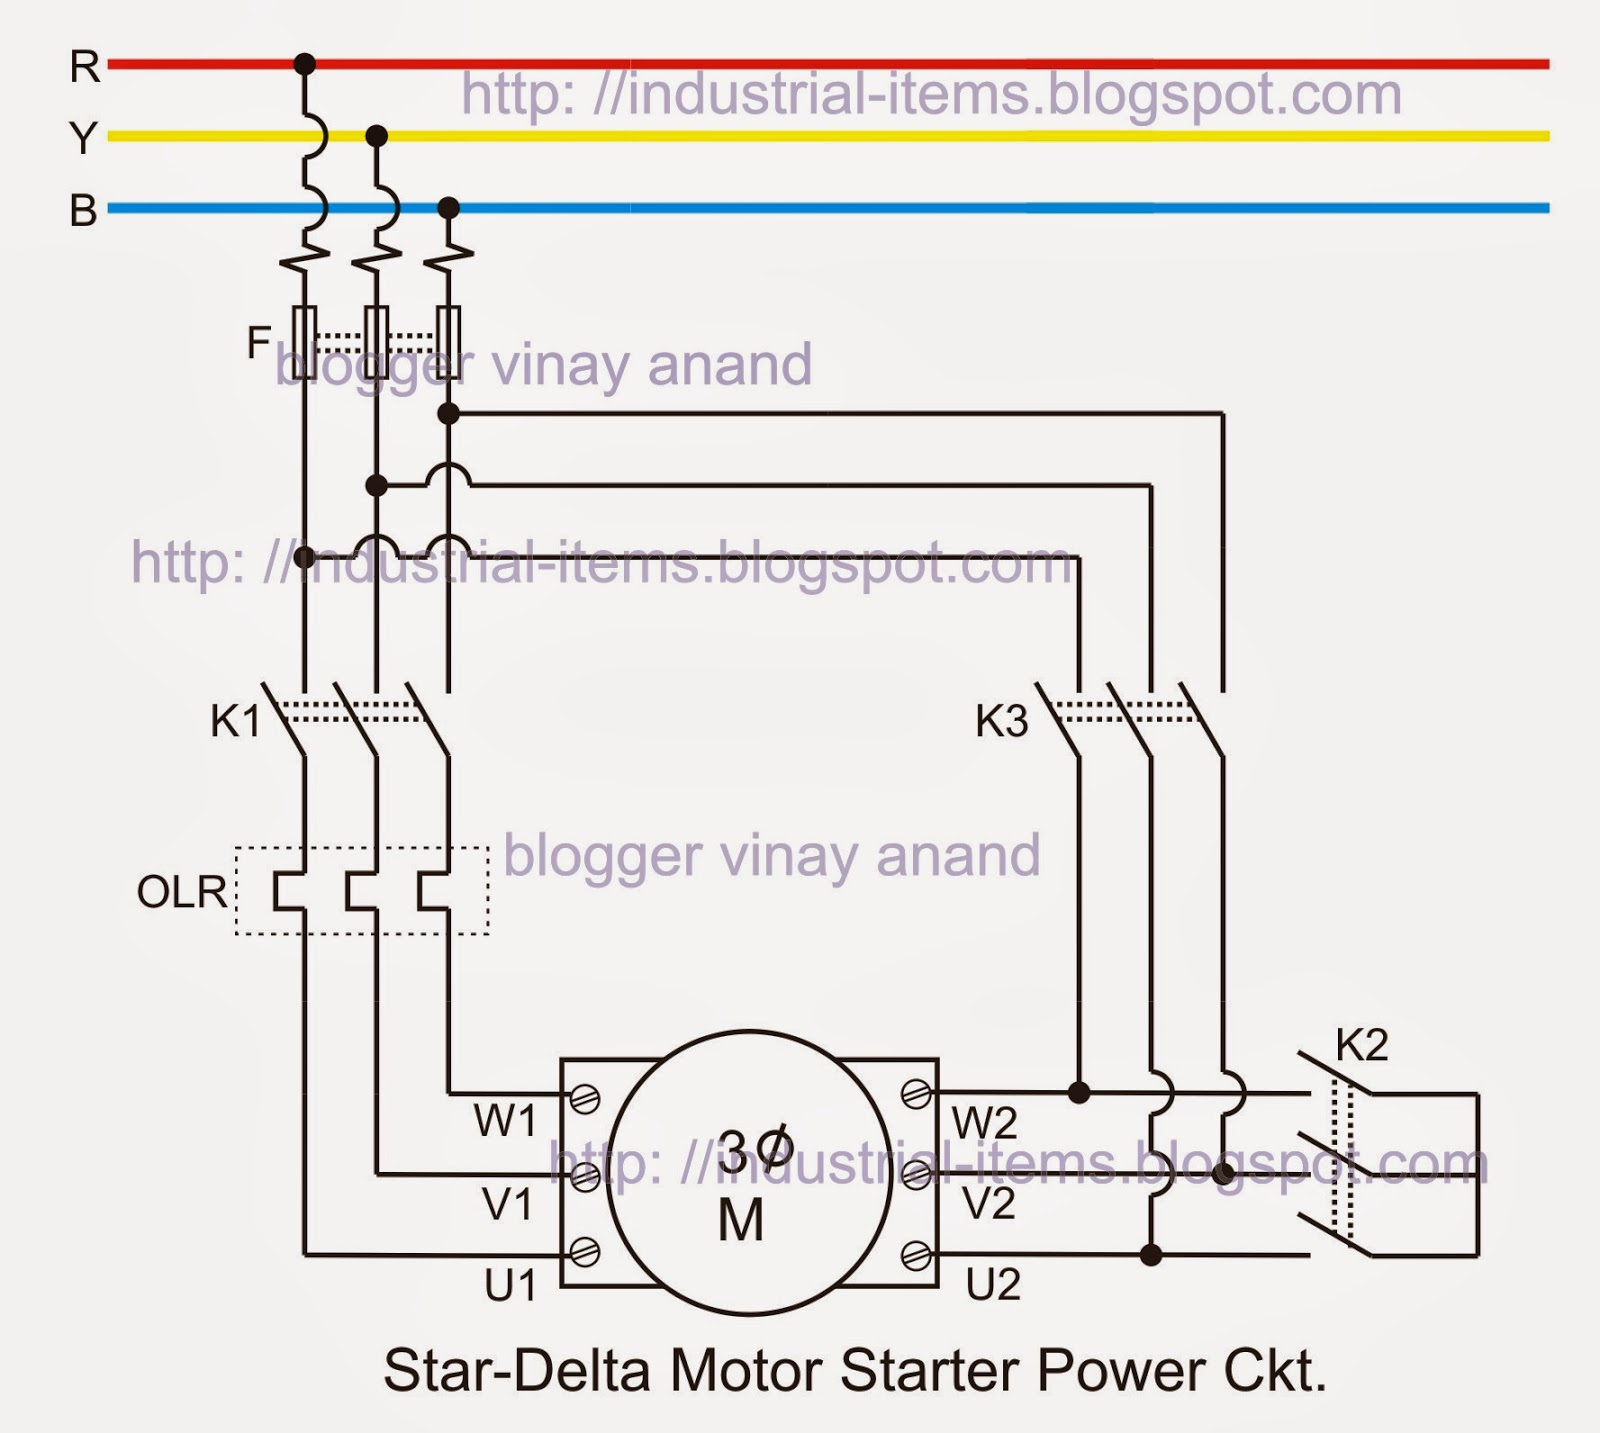 Star+Delta+power+Ckt. gk, current affairs, tutorials & articles star delta starter theory star delta starter control wiring diagram with timer pdf at fashall.co